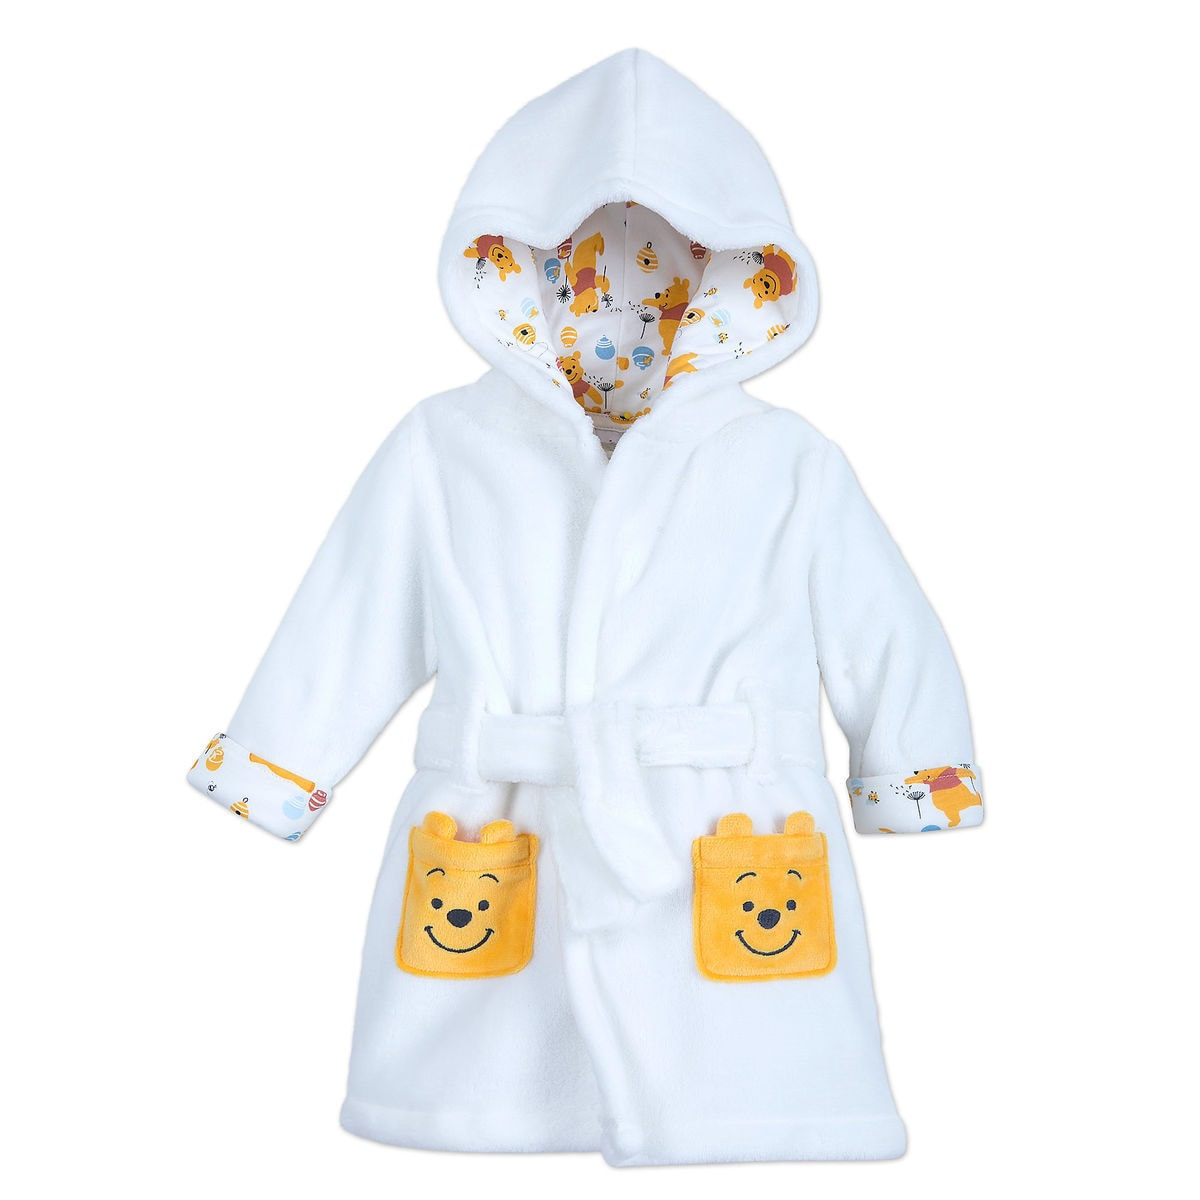 3e7b663926 Product Image of Winnie the Pooh Hooded Robe for Baby   1